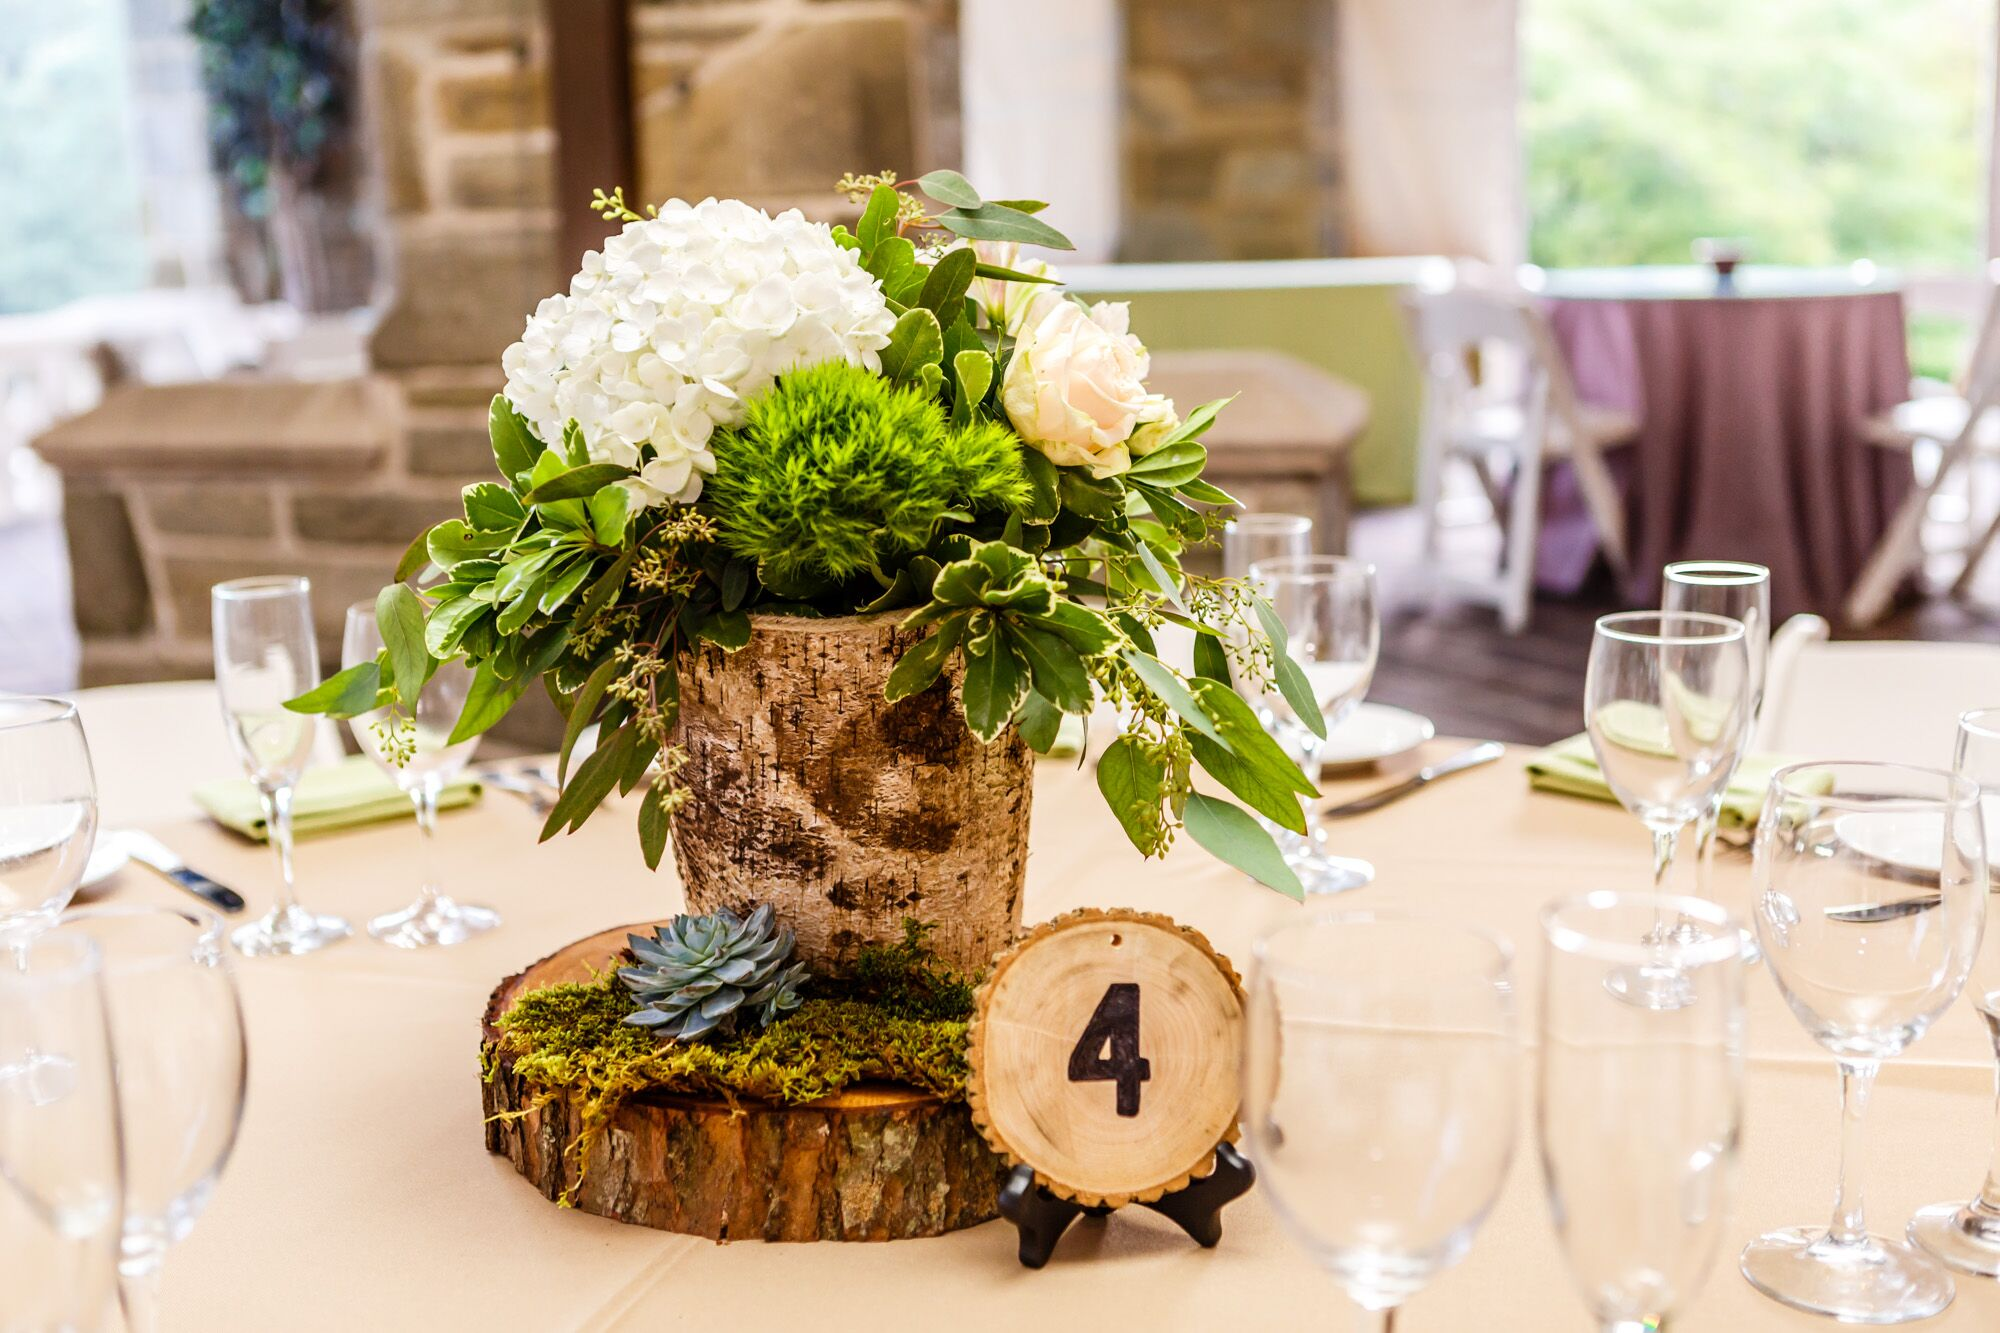 Birch wood centerpieces with hydrangeas and greenery